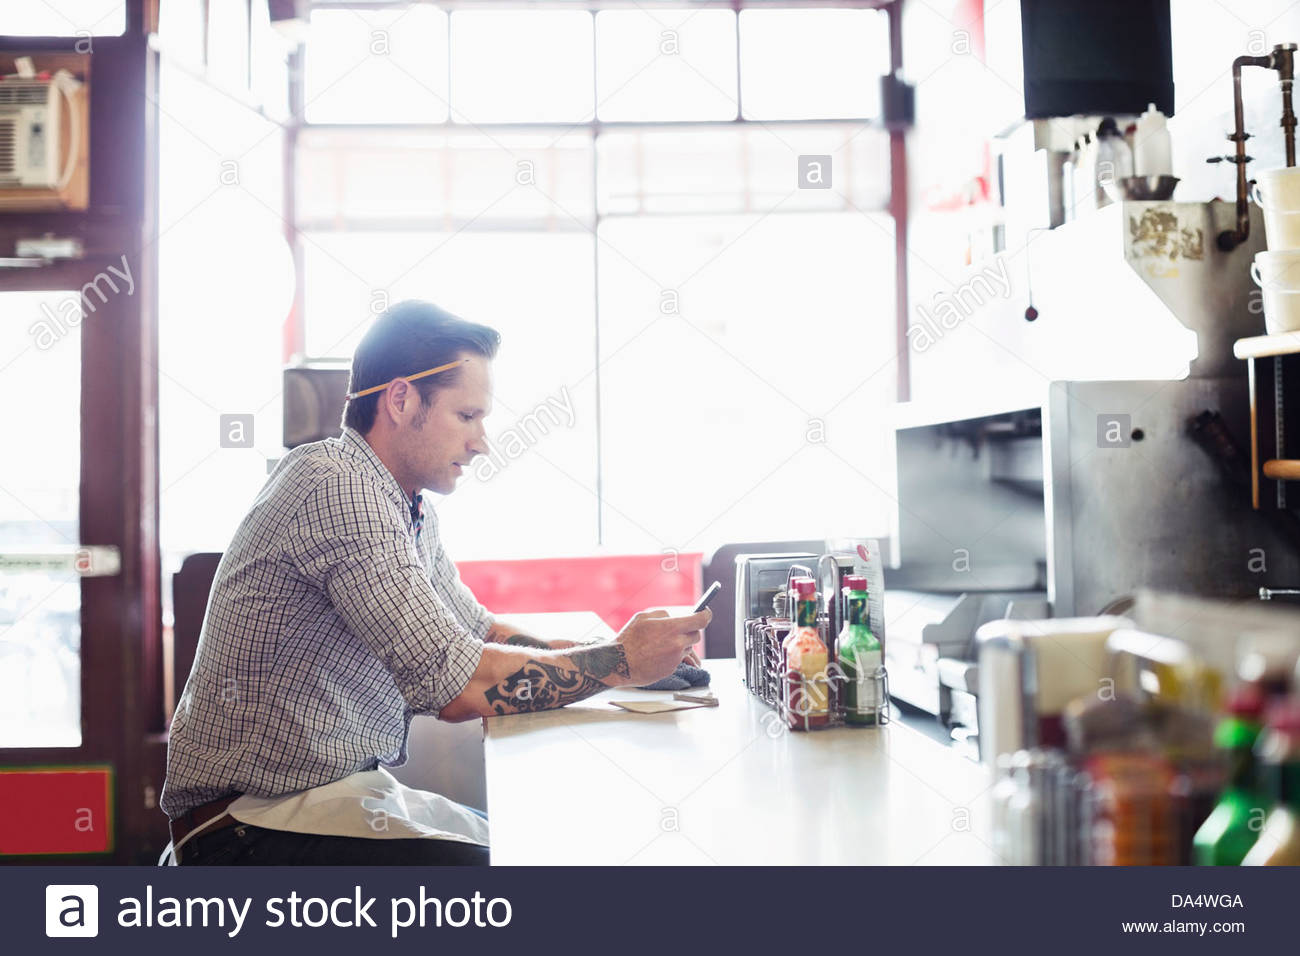 Male business owner text messaging on mobile phone at counter in diner - Stock Image